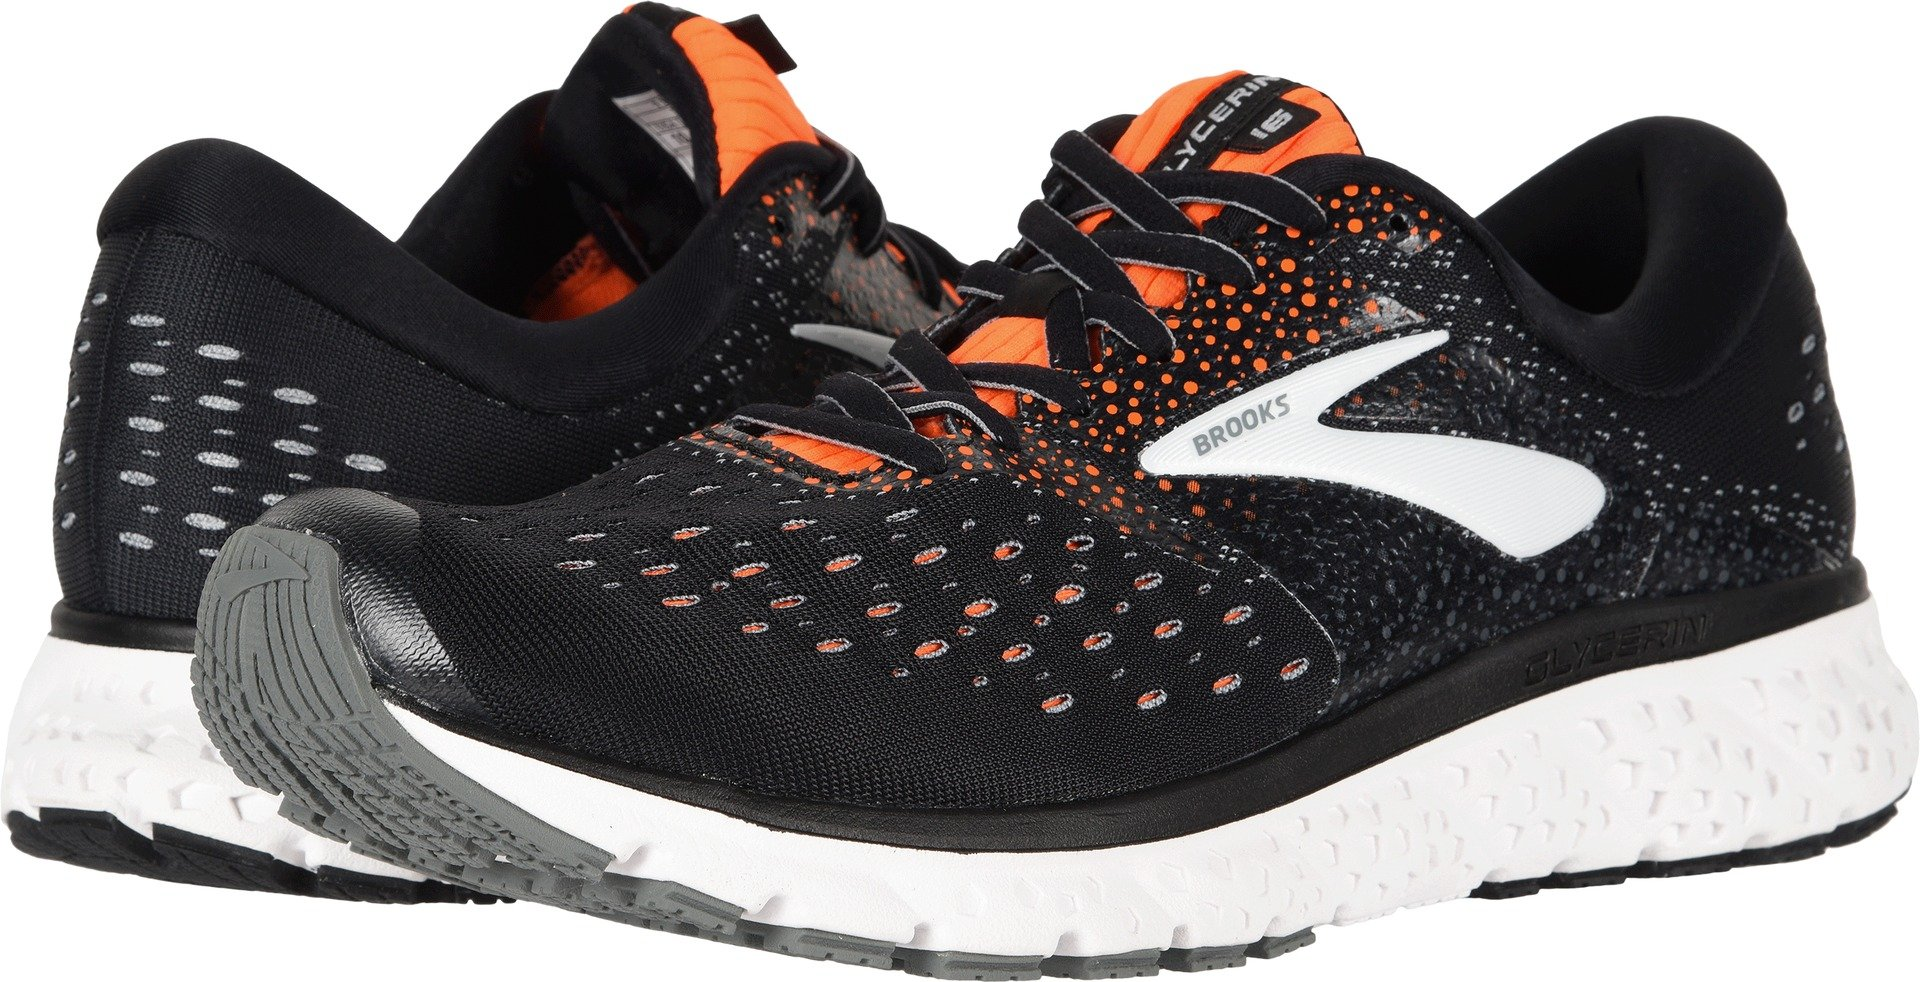 e23b73fc7f164 Galleon - Brooks Men s Glycerin 16 Black Orange Grey 11.5 EE US